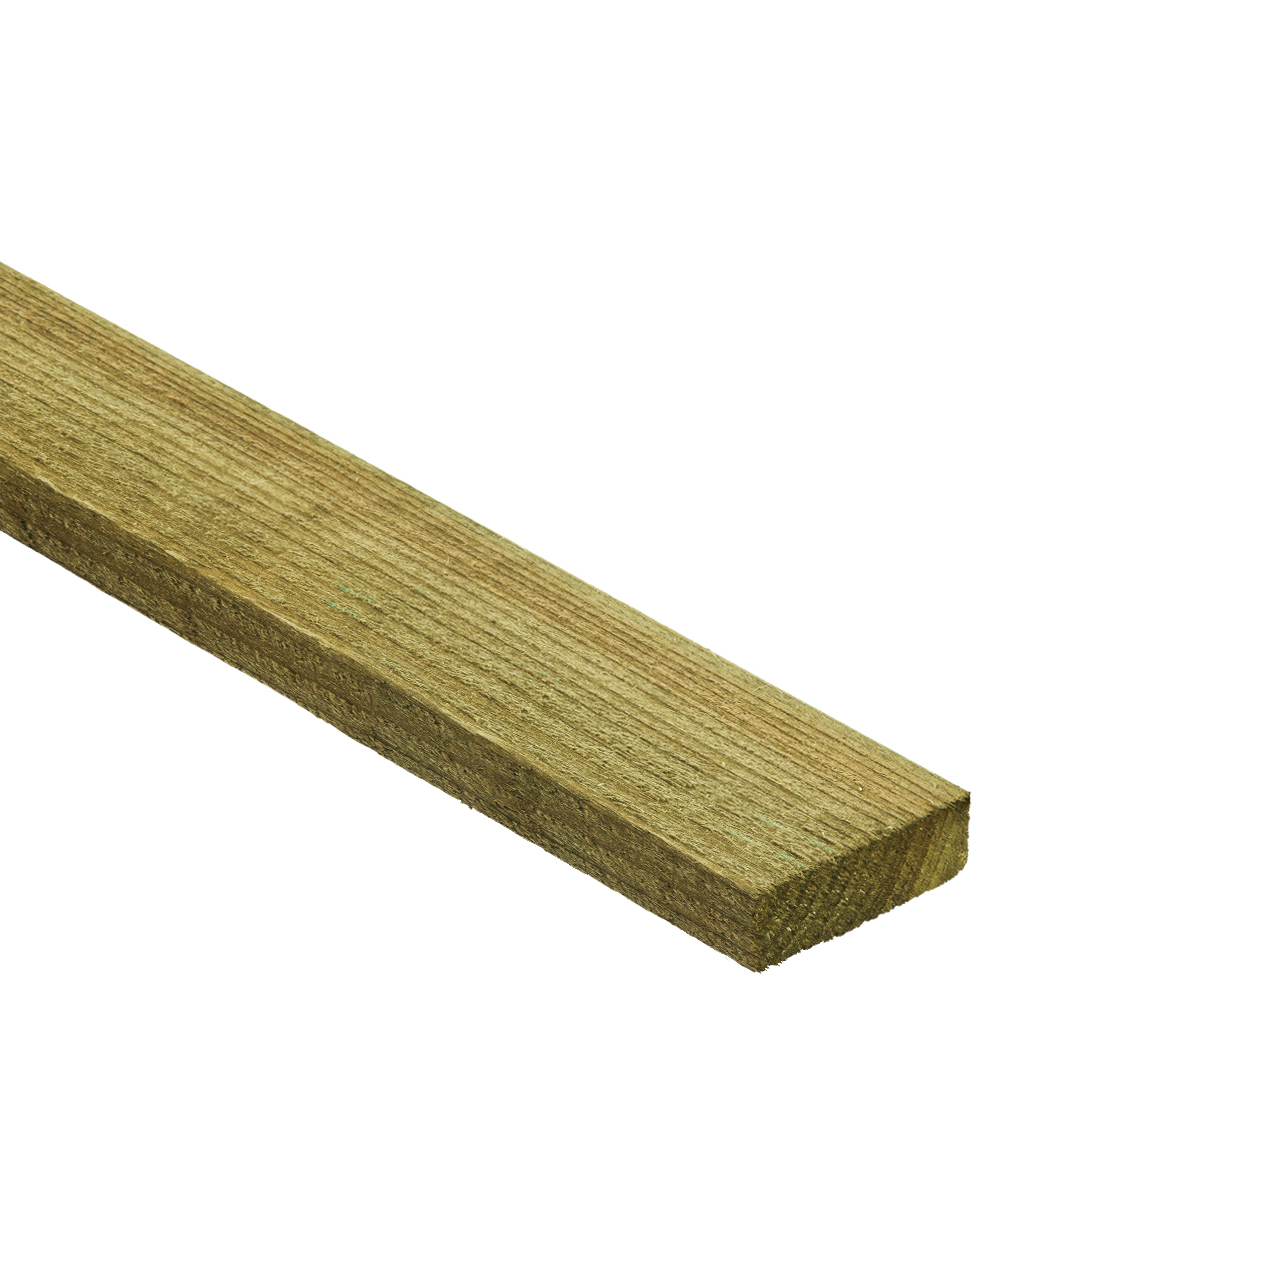 Rough Sawn Carcassing Green Treated 38mm x 87mm image 0